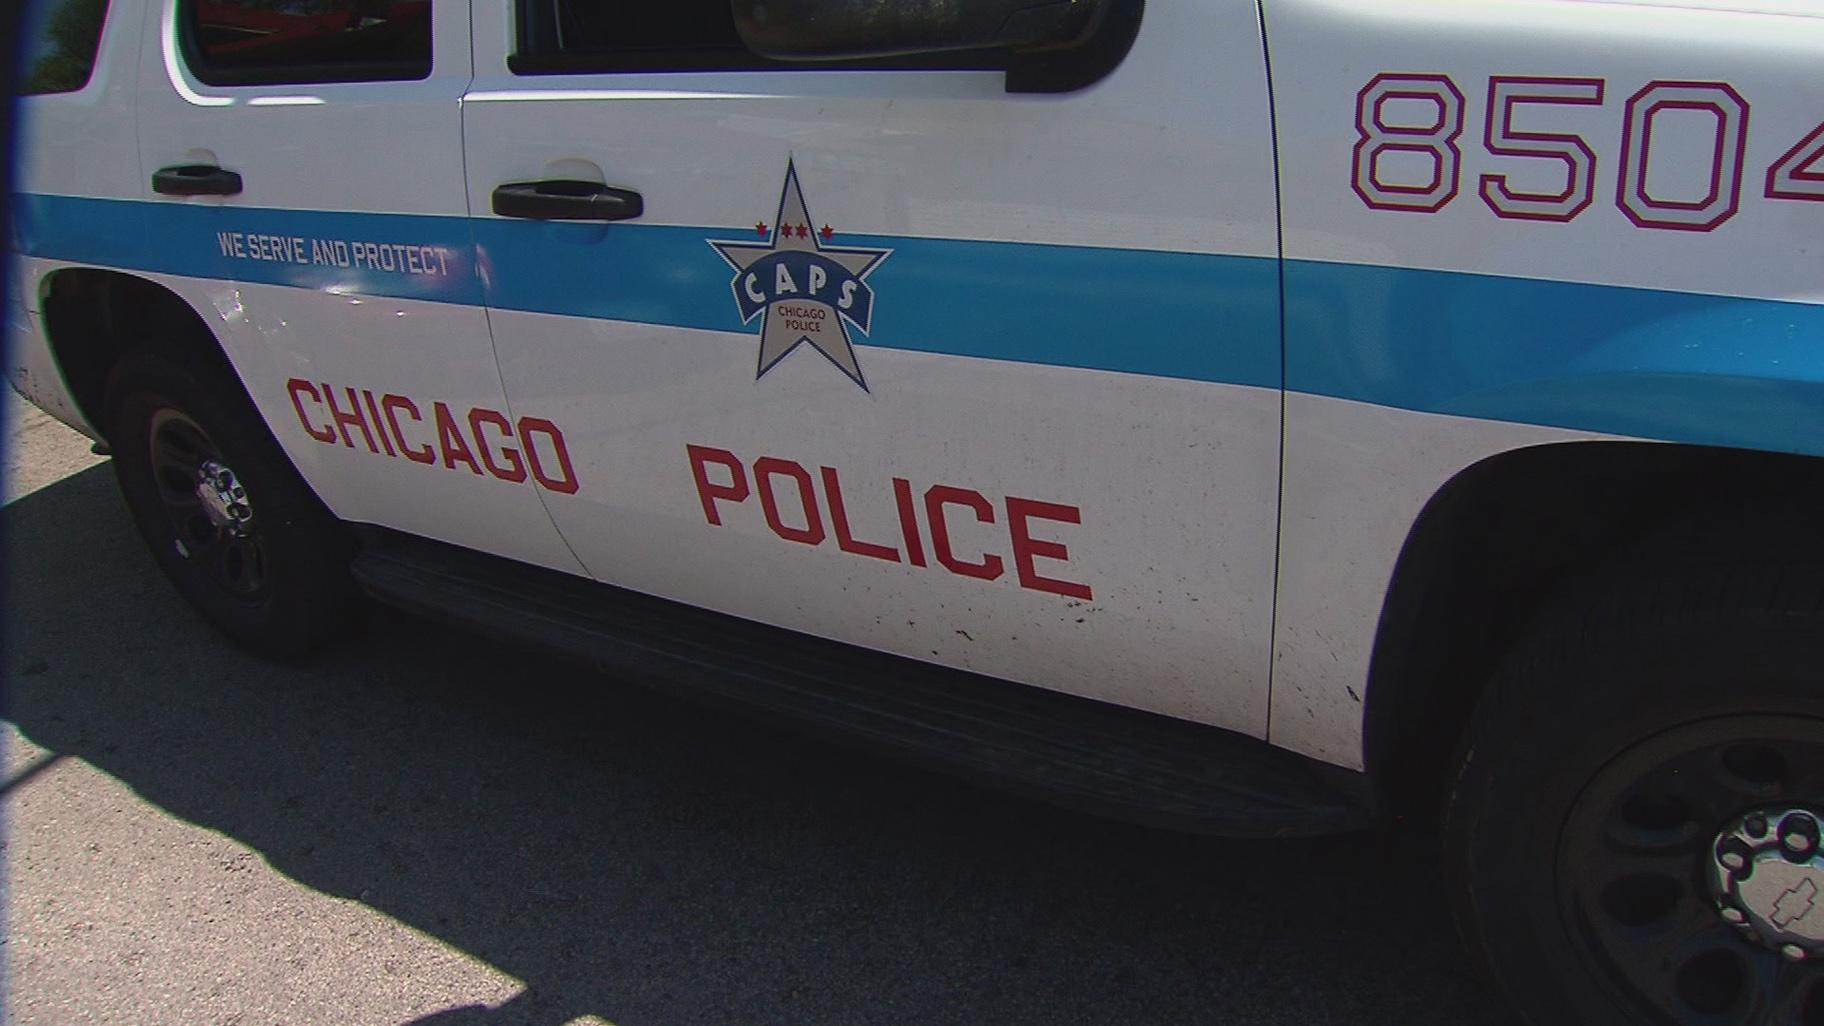 Family: Chicago Police Vehicles Caused Deadly Weekend Crash